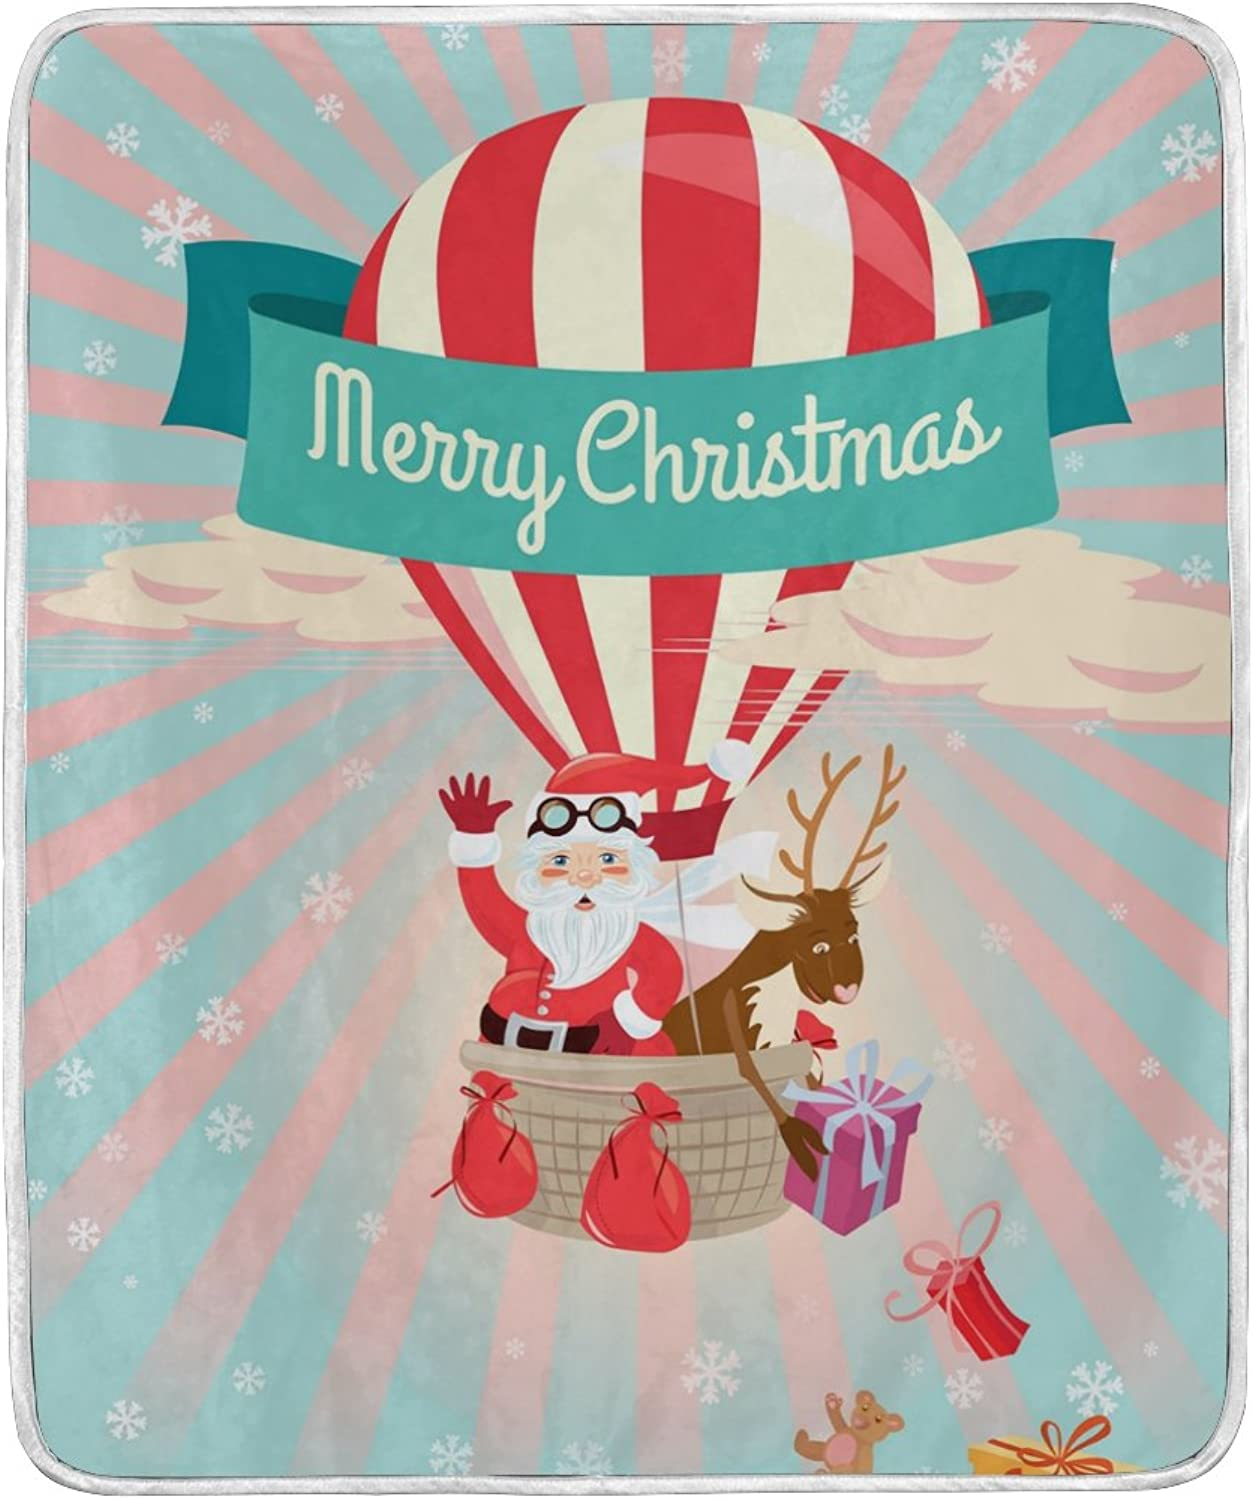 ALIREA Merry Christmas Santa Claus Wave Super Soft Warm Blanket Lightweight Throw Blankets for Bed Couch Sofa Travelling Camping 60 x 50 Inch for Kids Boys Girls